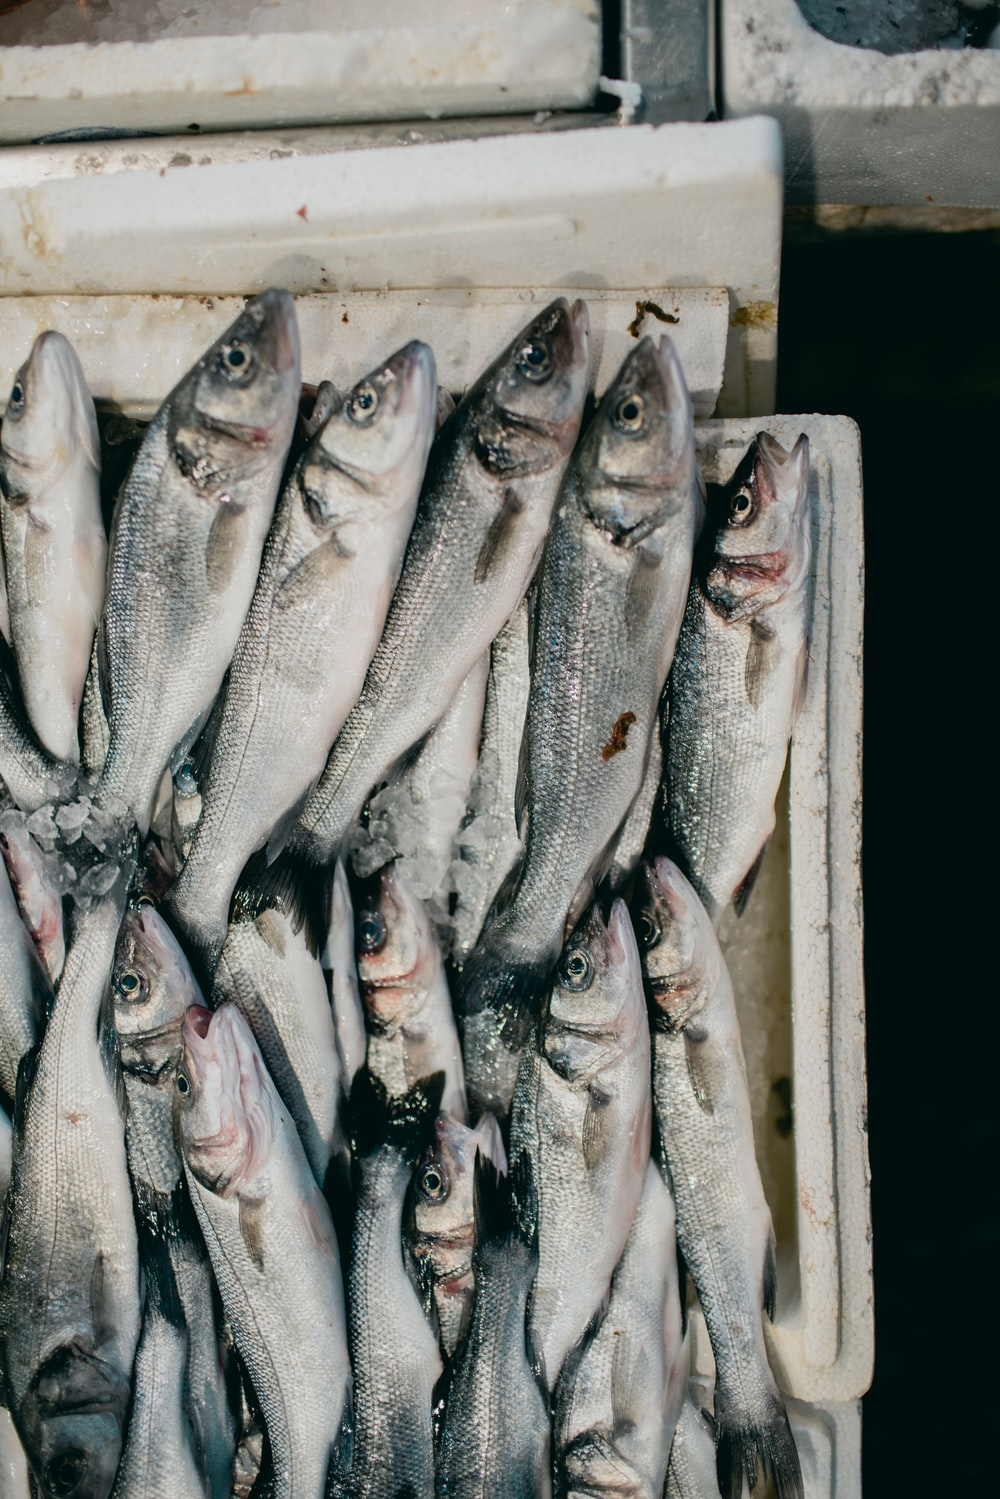 white and black fish on brown wooden crate